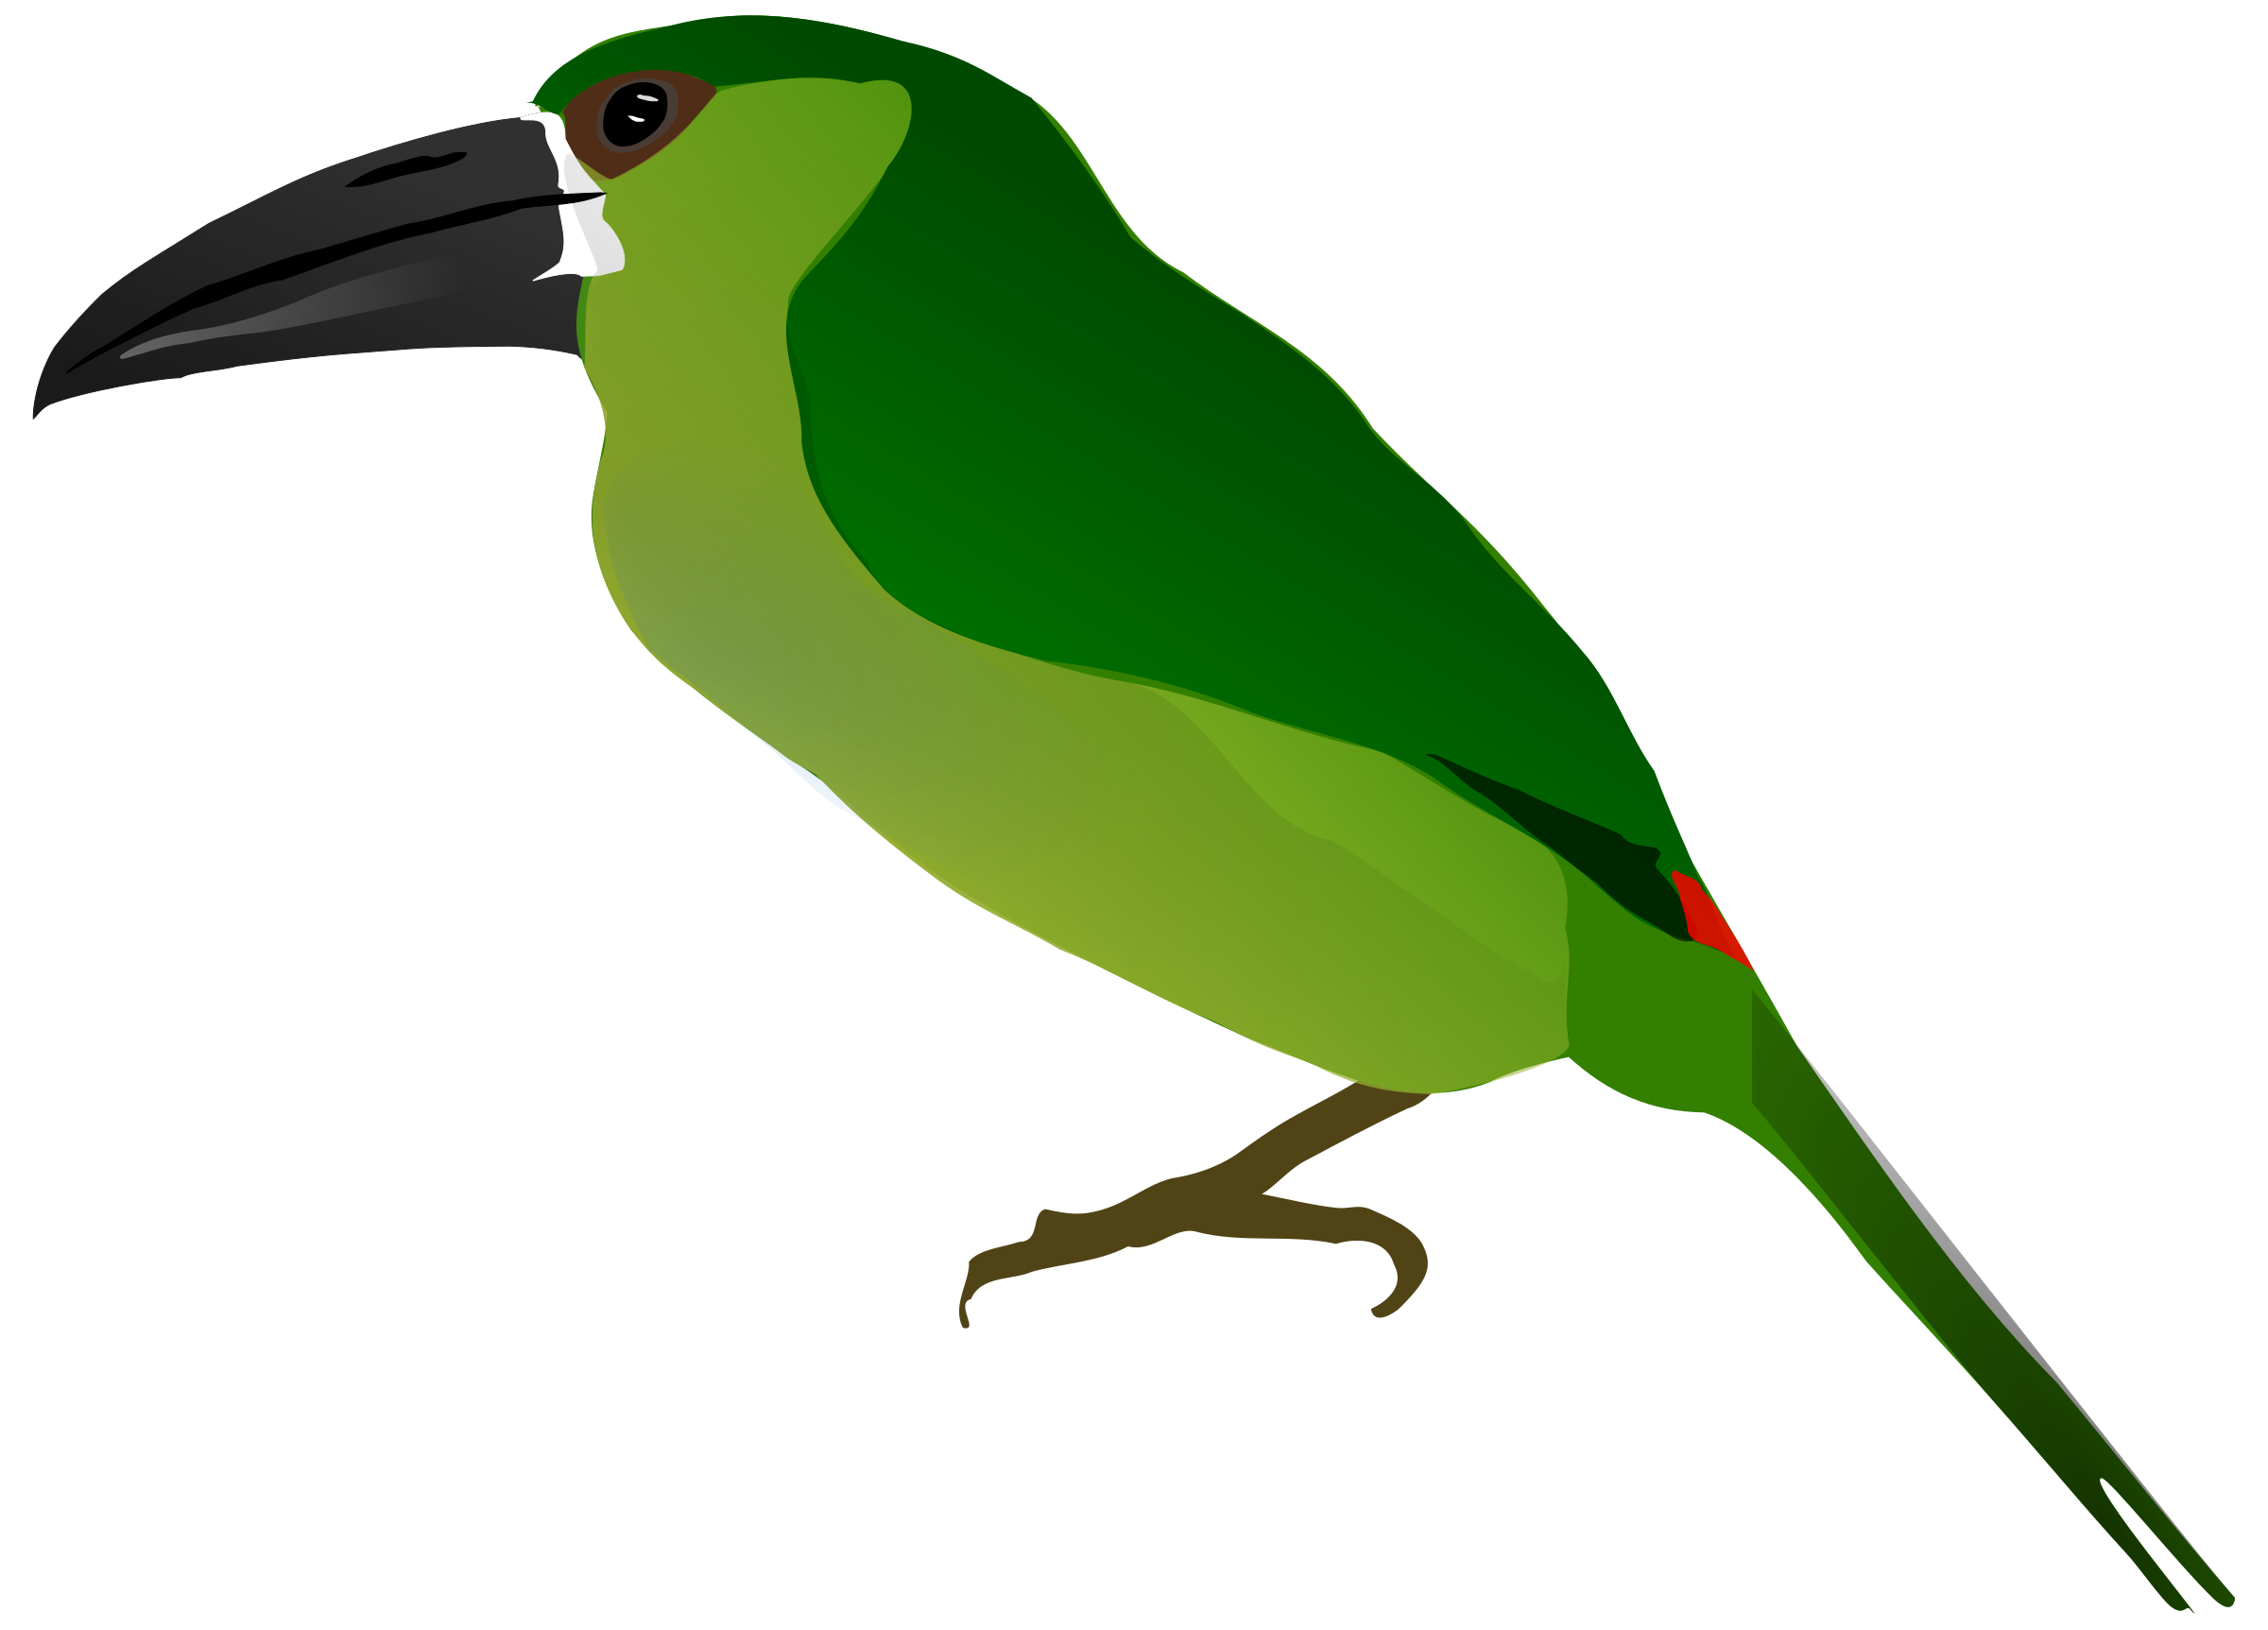 Toucanet clipart Toucanet Crimson Clipart rumped Crimson